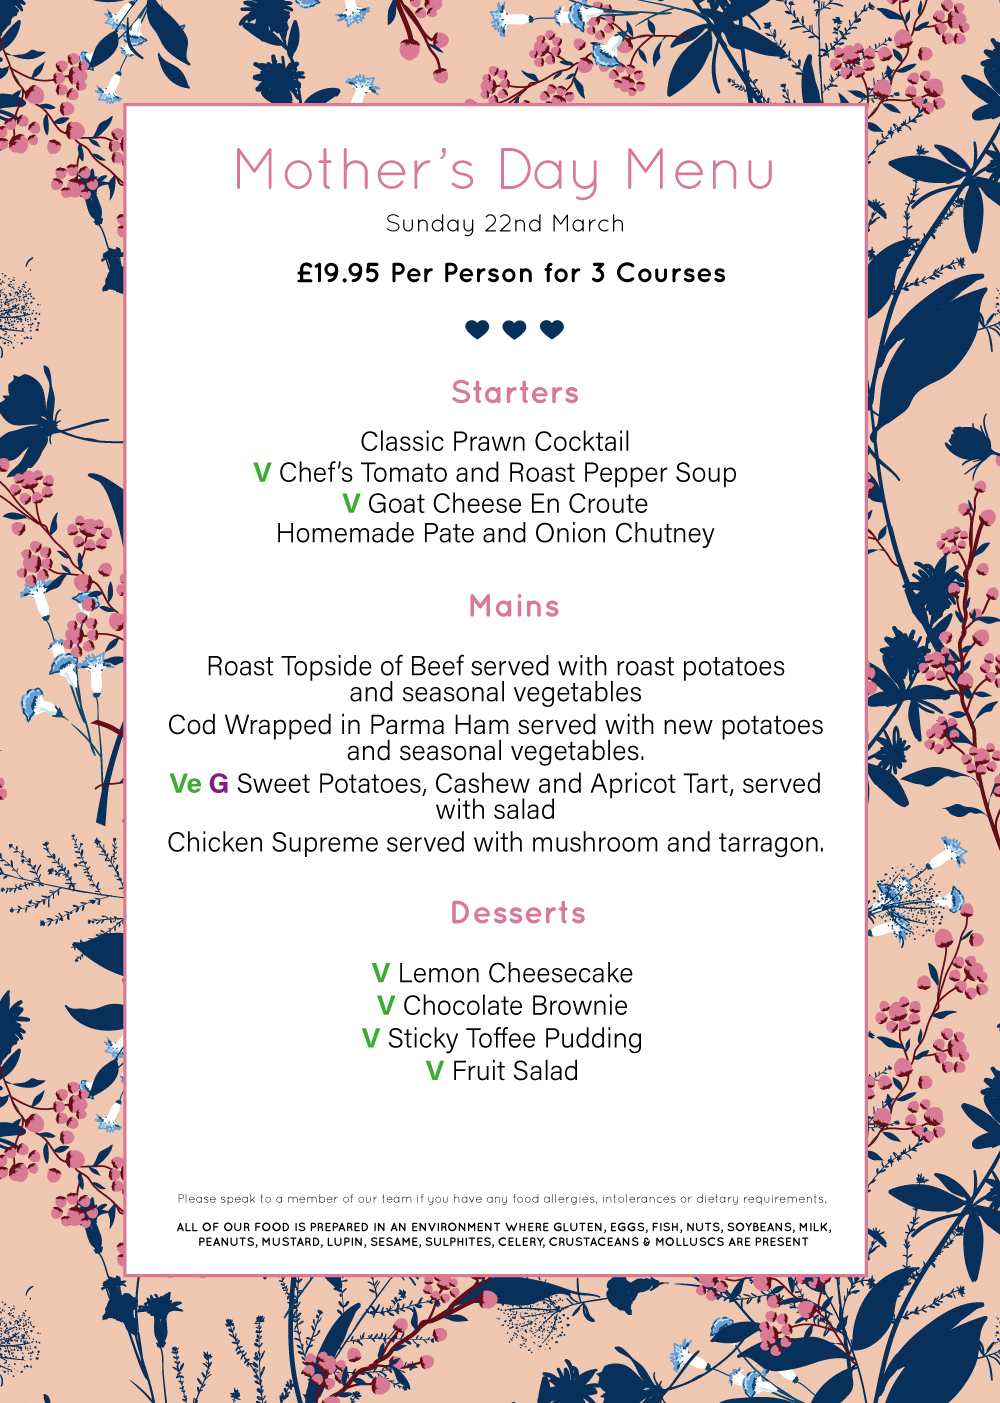 Mother's Day Menu. Sunday 22nd March. £19.95 Per Person for 3 Courses.